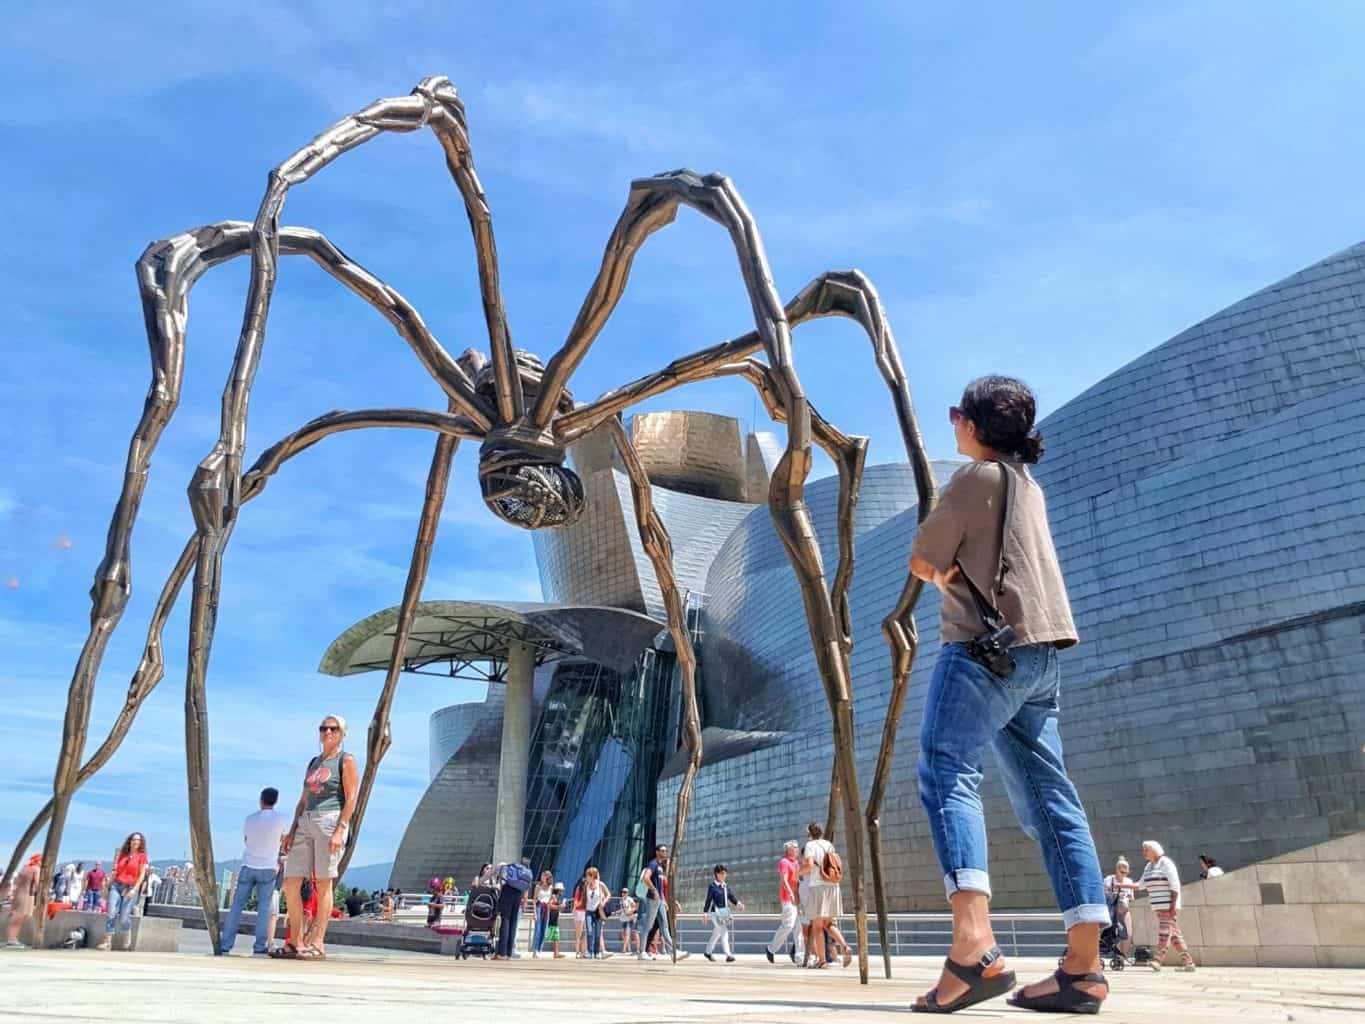 Guggenheim Museum in Bilbao - 7 things you must do in Bilbao and La Rioja